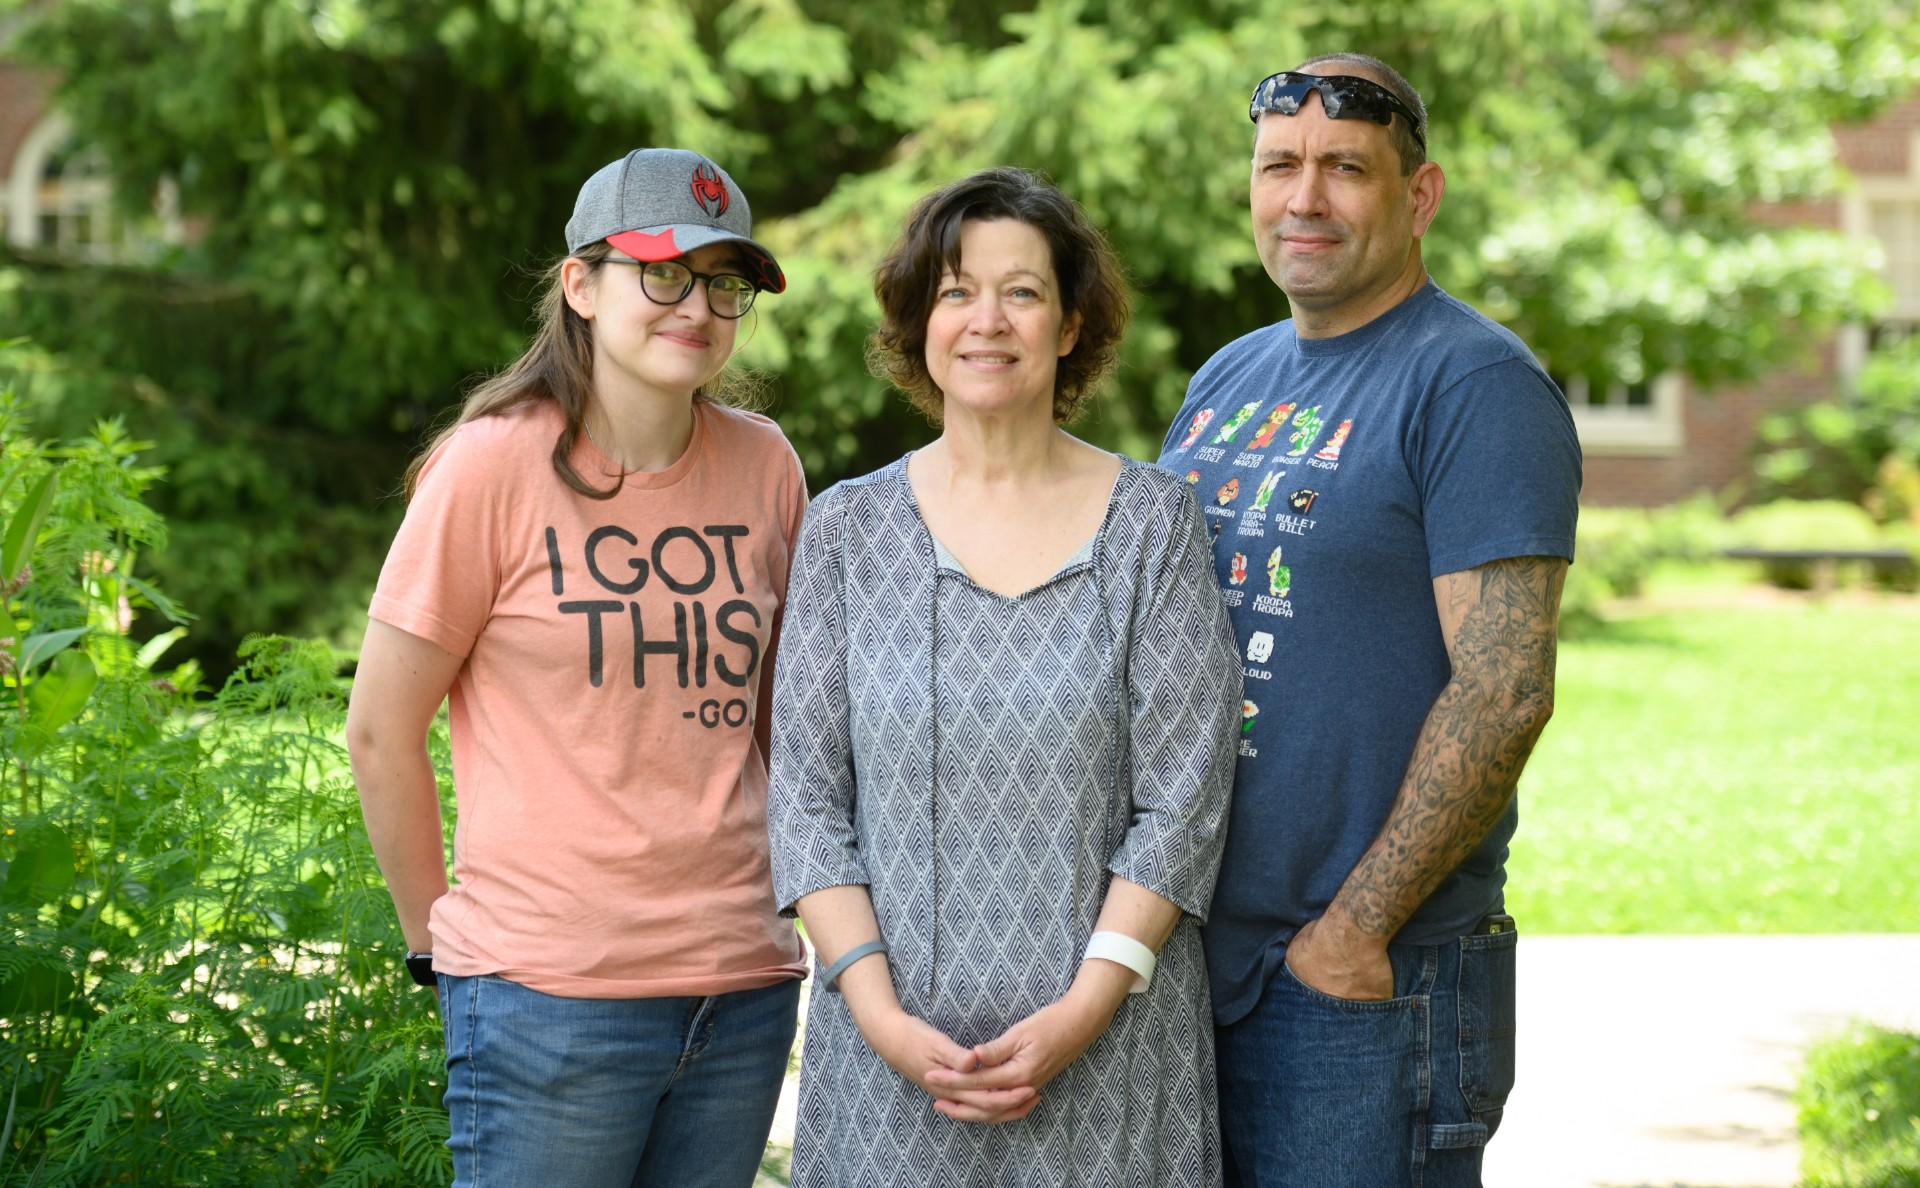 Kathy stands between her daughter, Caitlyn, and her husband, Robert, an older white man with a salt-and-pepper buzzcut and tattoos down his arm, as they all smile for the camera. He is wearing a Super Mario t-shirt, blue jeans, and a pair of black sunglasses on his head.